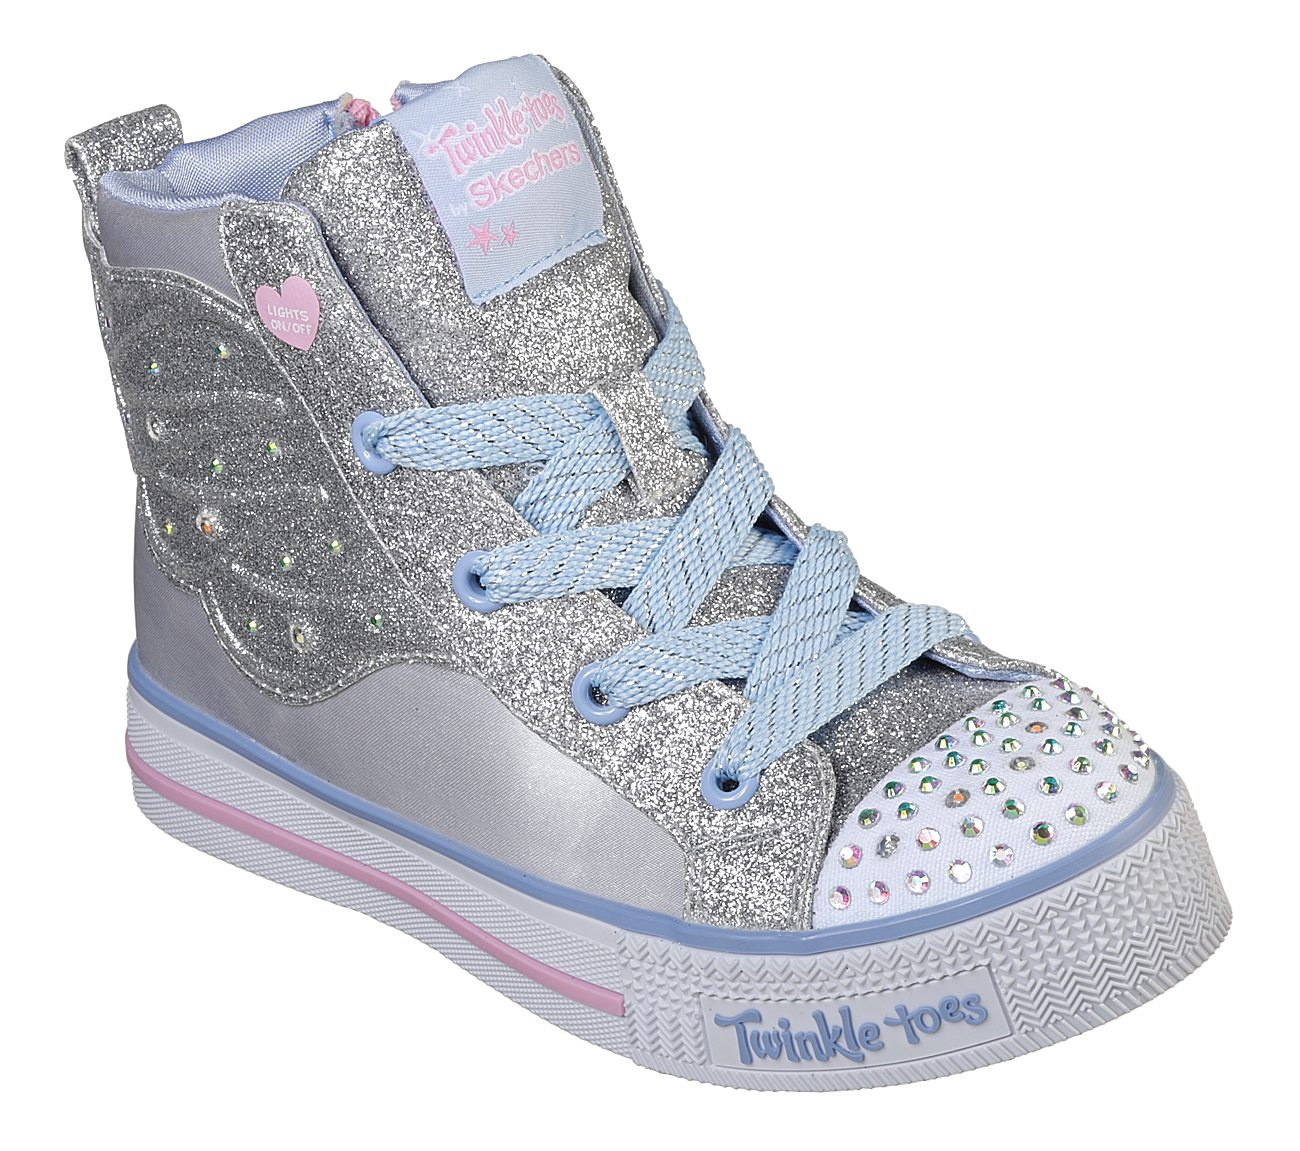 5101ad230 Buy SKECHERS Twinkle Toes: Shuffle Lite - Wonder Wingz Lace-Up Sneakers  Shoes only 60,00 €